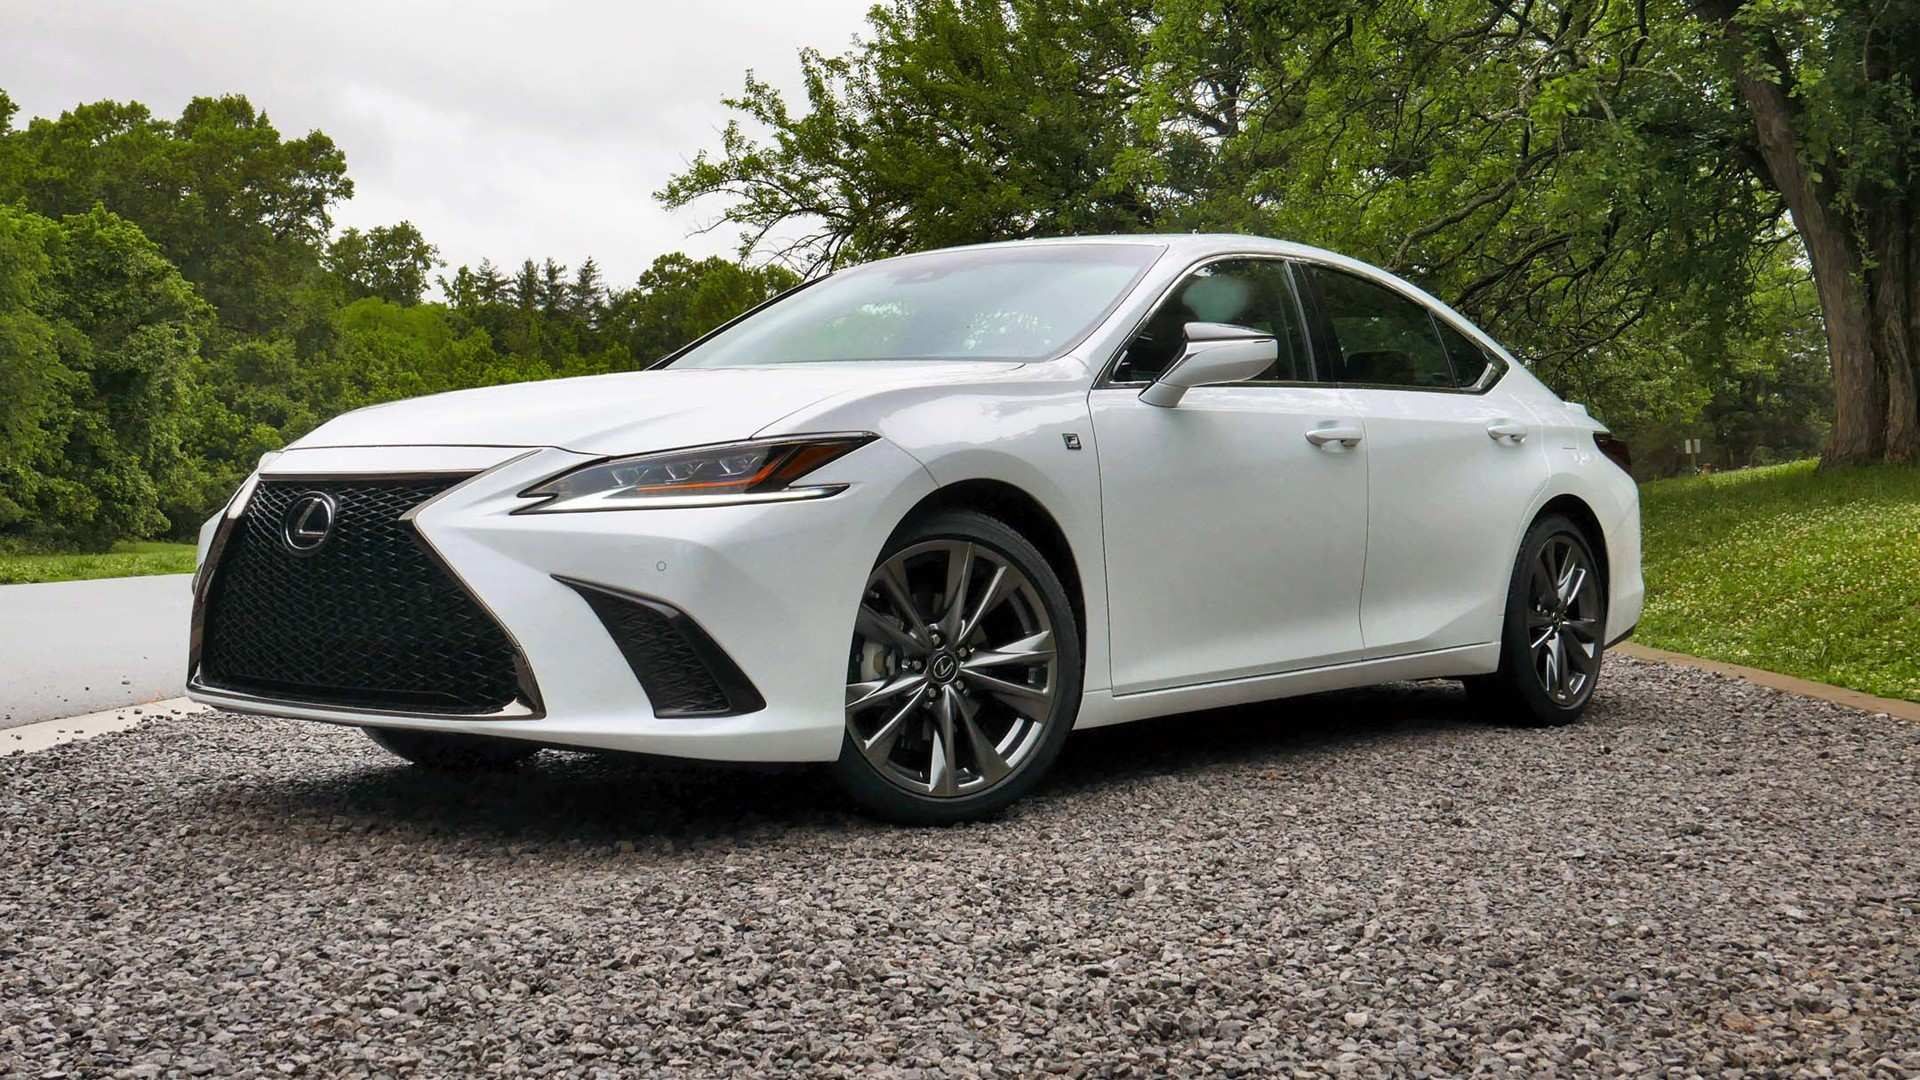 44 Best Review 2019 Lexus Es 350 F Sport Style with 2019 Lexus Es 350 F Sport